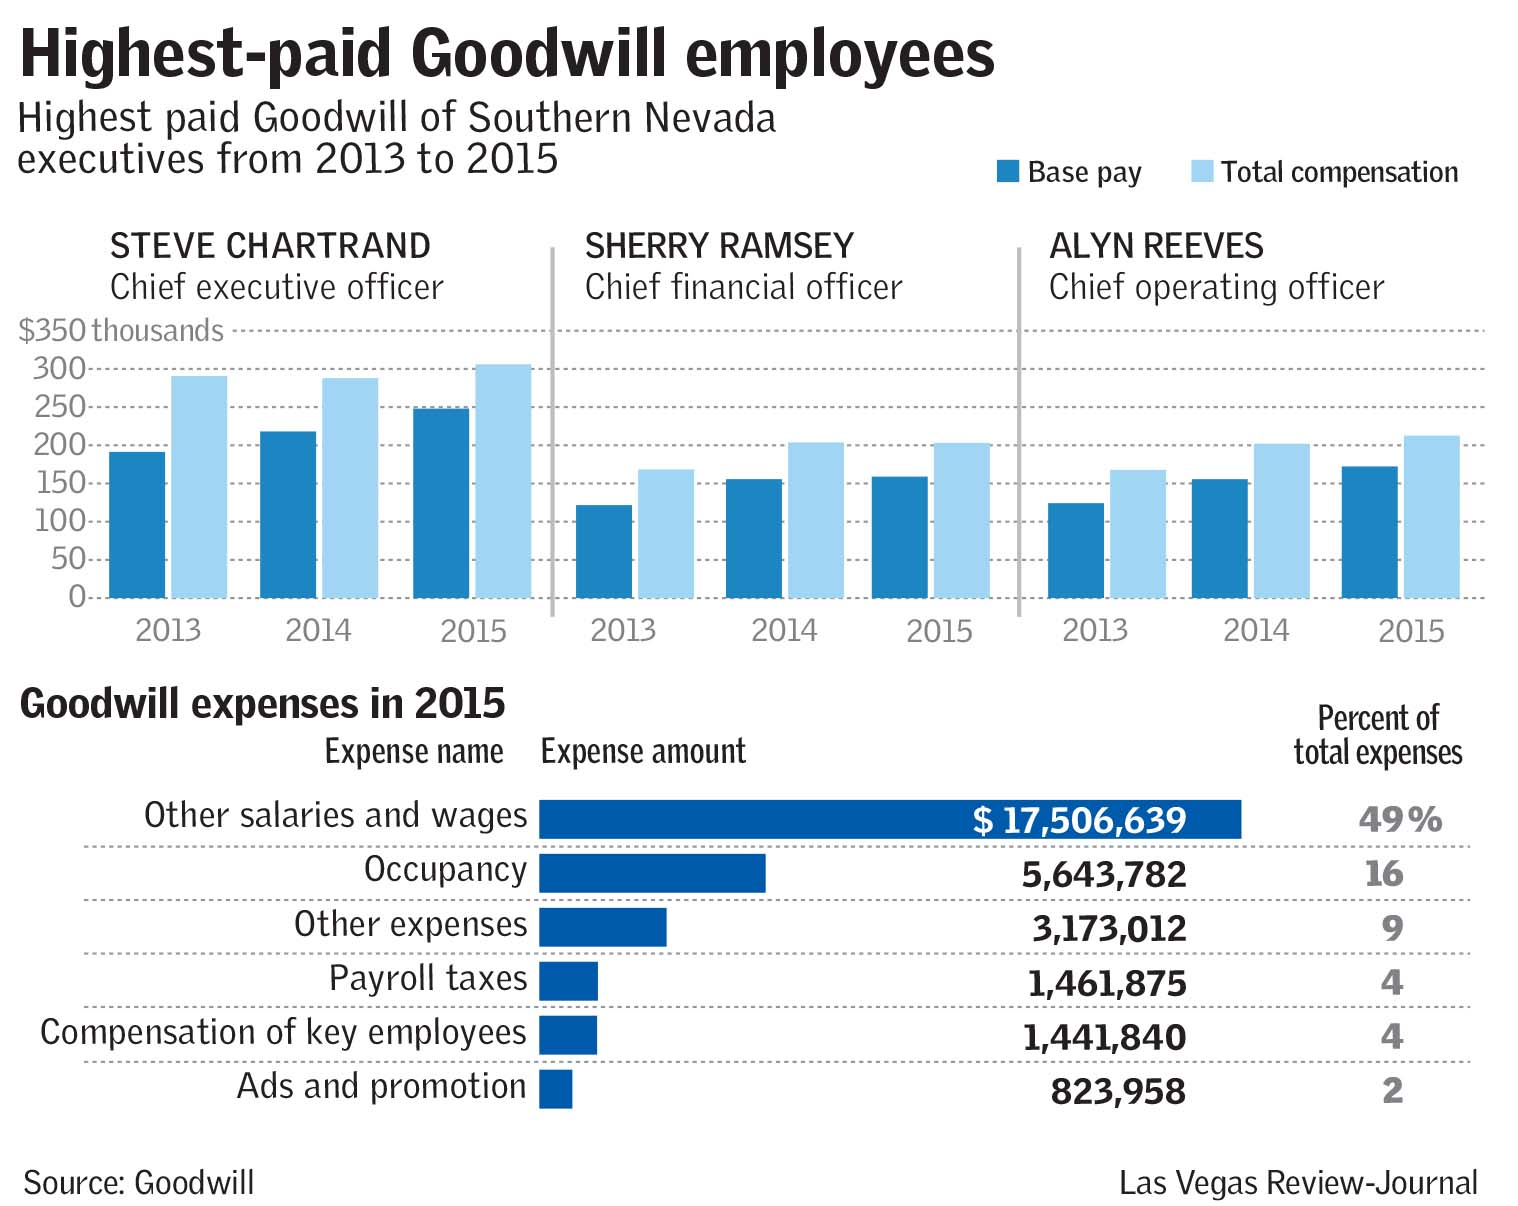 Highest-paid Goodwill employees